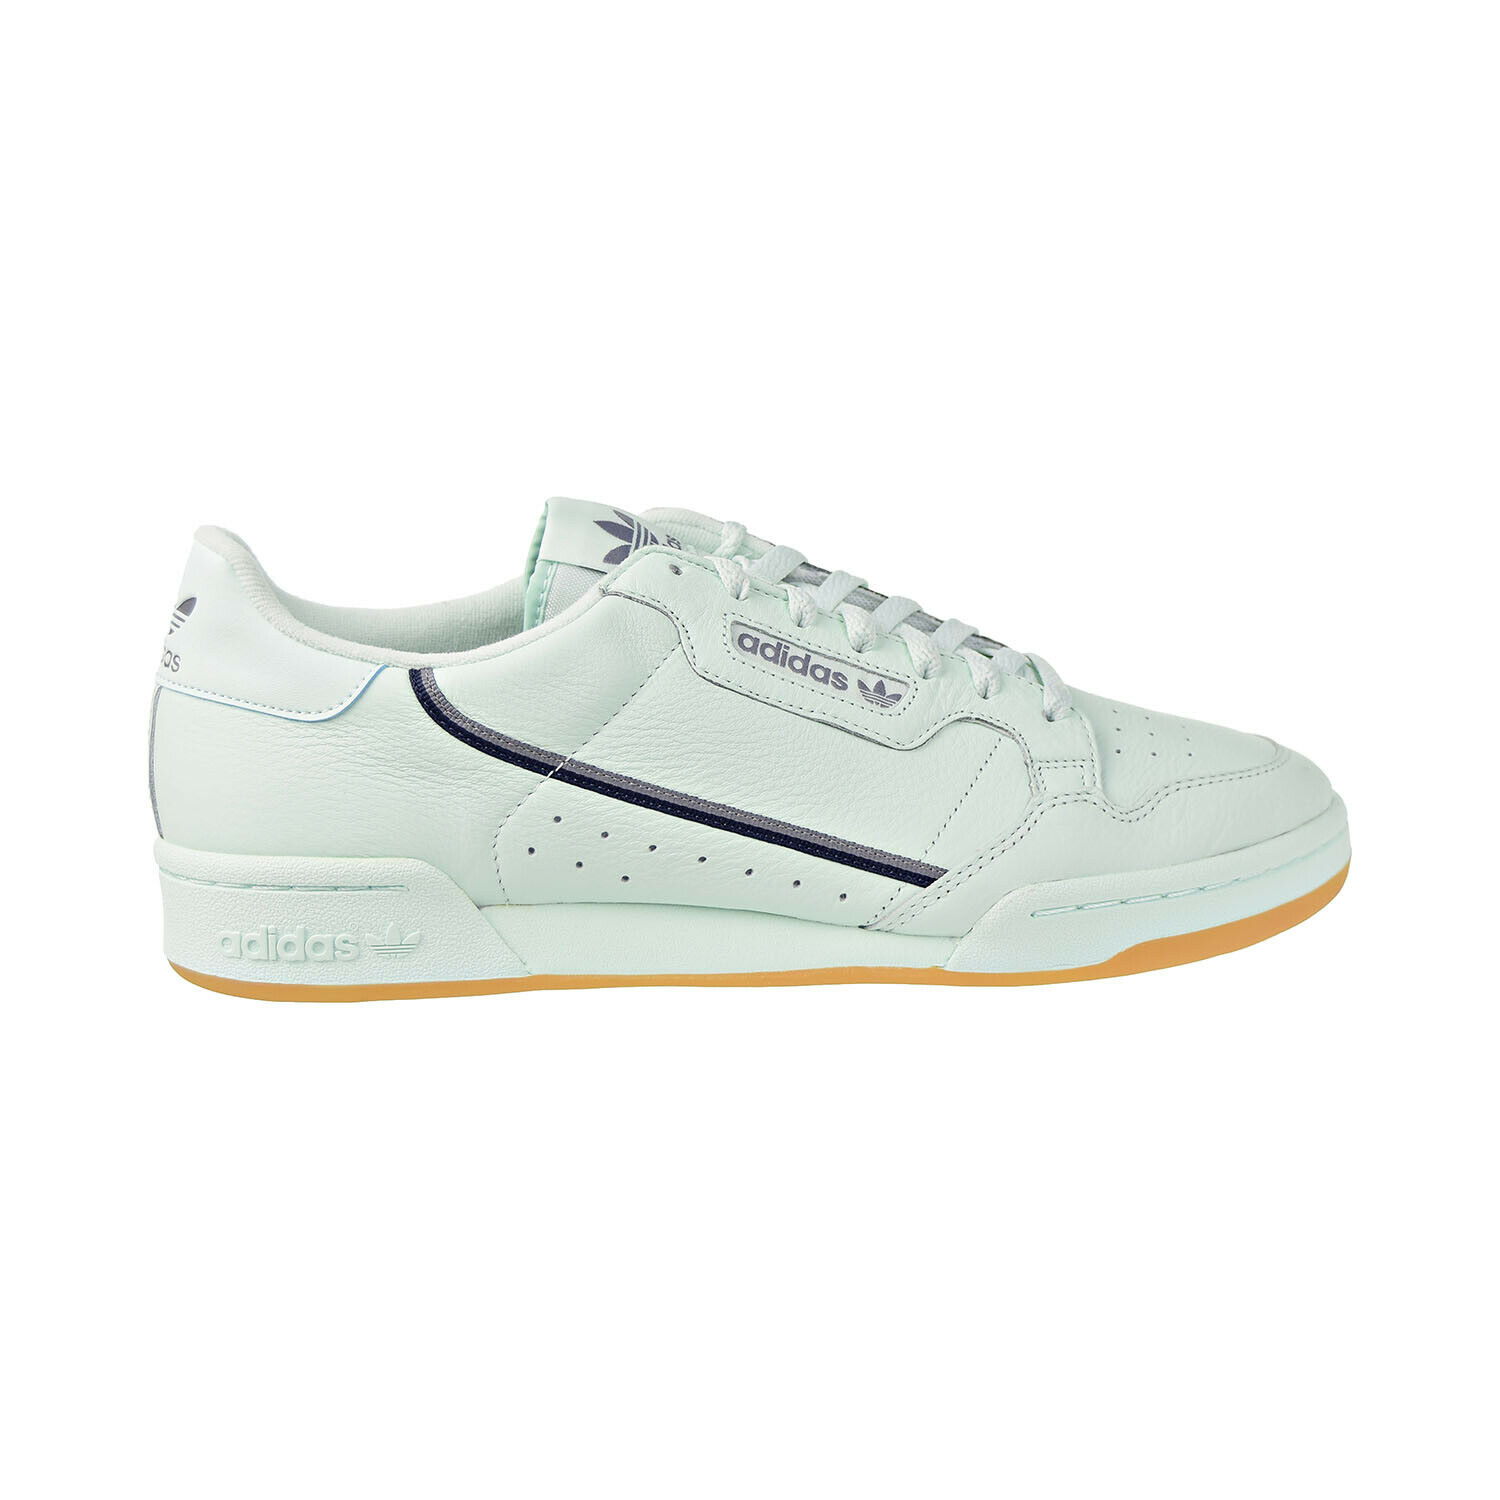 Adidas Continental 80 Mens shoes Ice Mint Collegiate Navy Grey BD7641